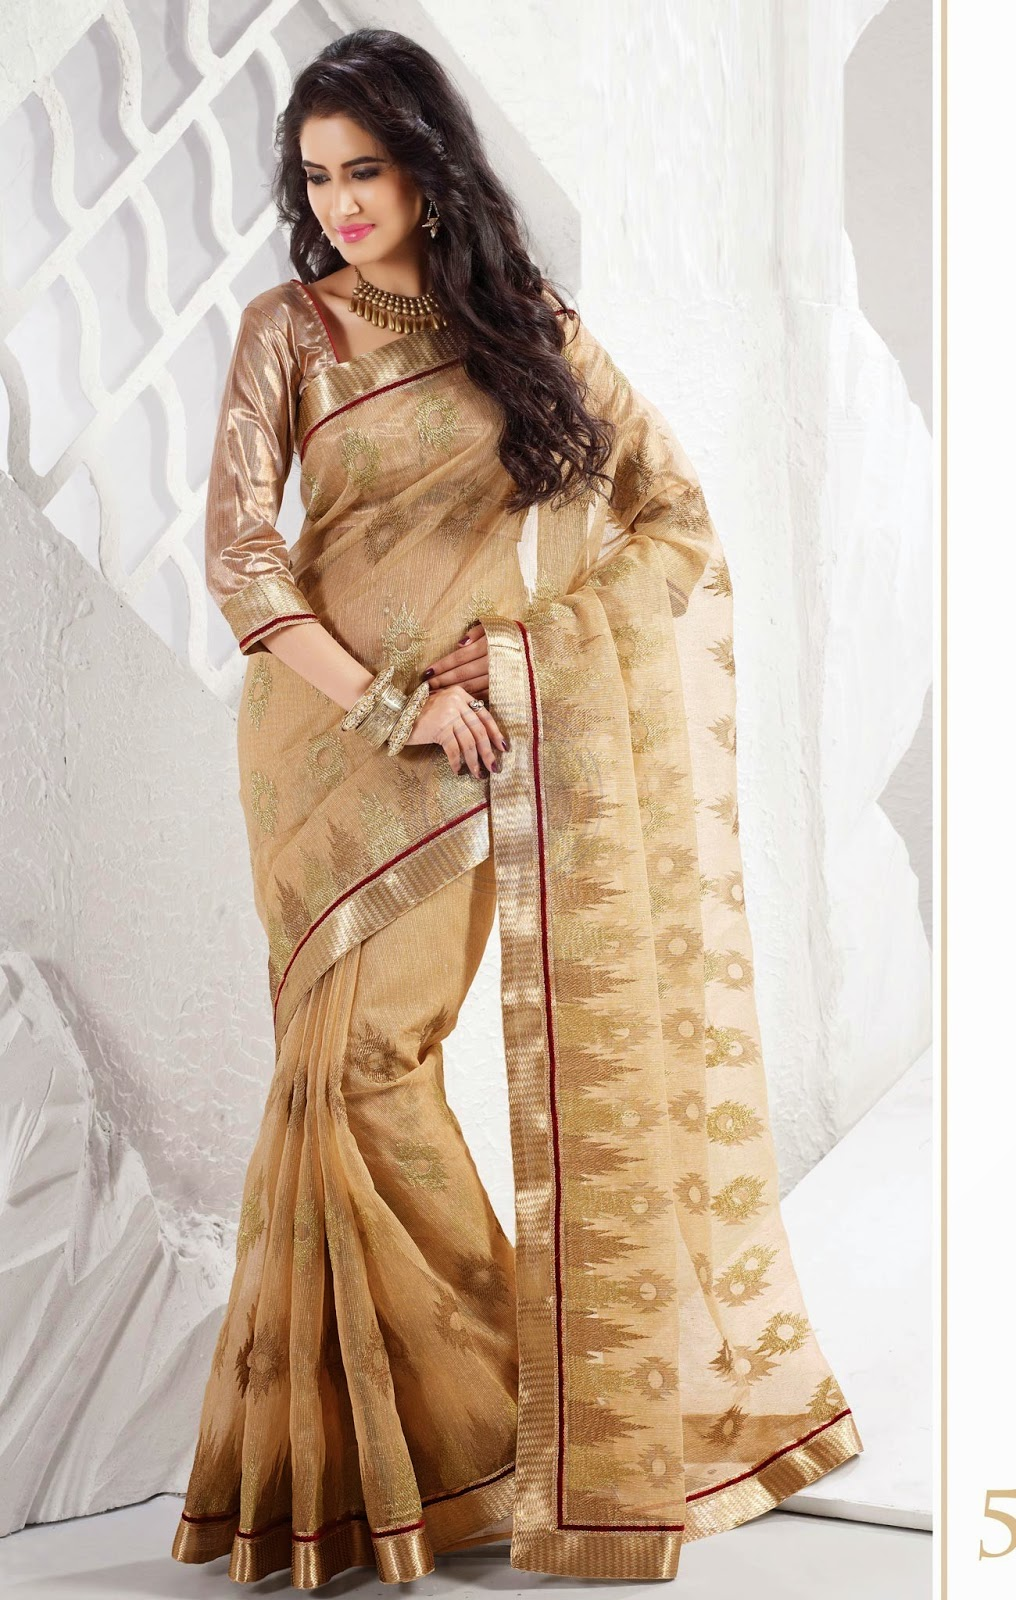 Chennai Silks Fancy Designer Saree collections